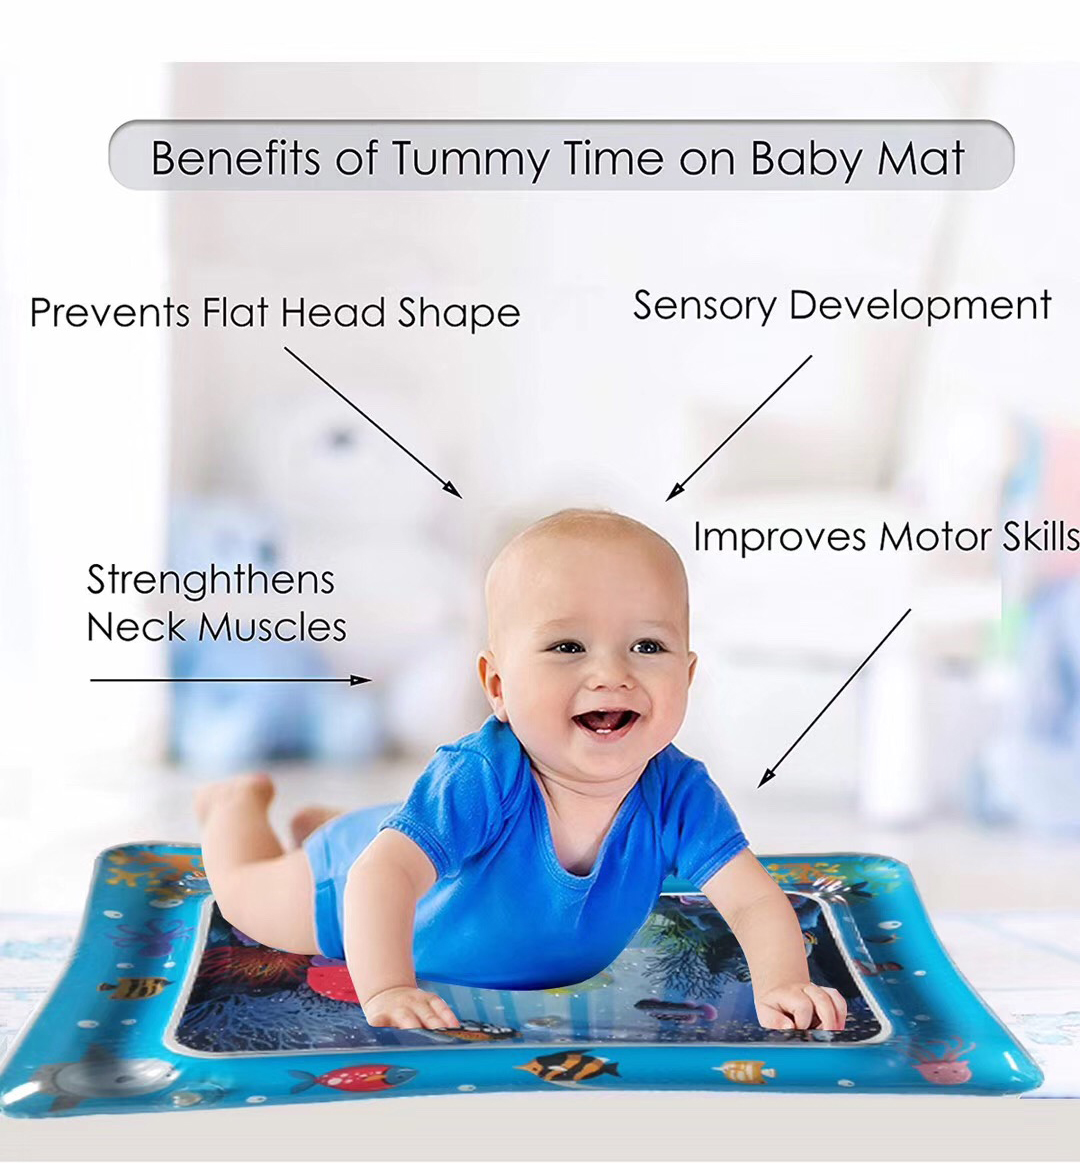 HTB11OCDL9zqK1RjSZFHq6z3CpXa1 Hot Sales Baby Kids water play mat Inflatable Infant Tummy Time Playmat Toddler for Baby Fun Activity Play Center DropshipTSLM1